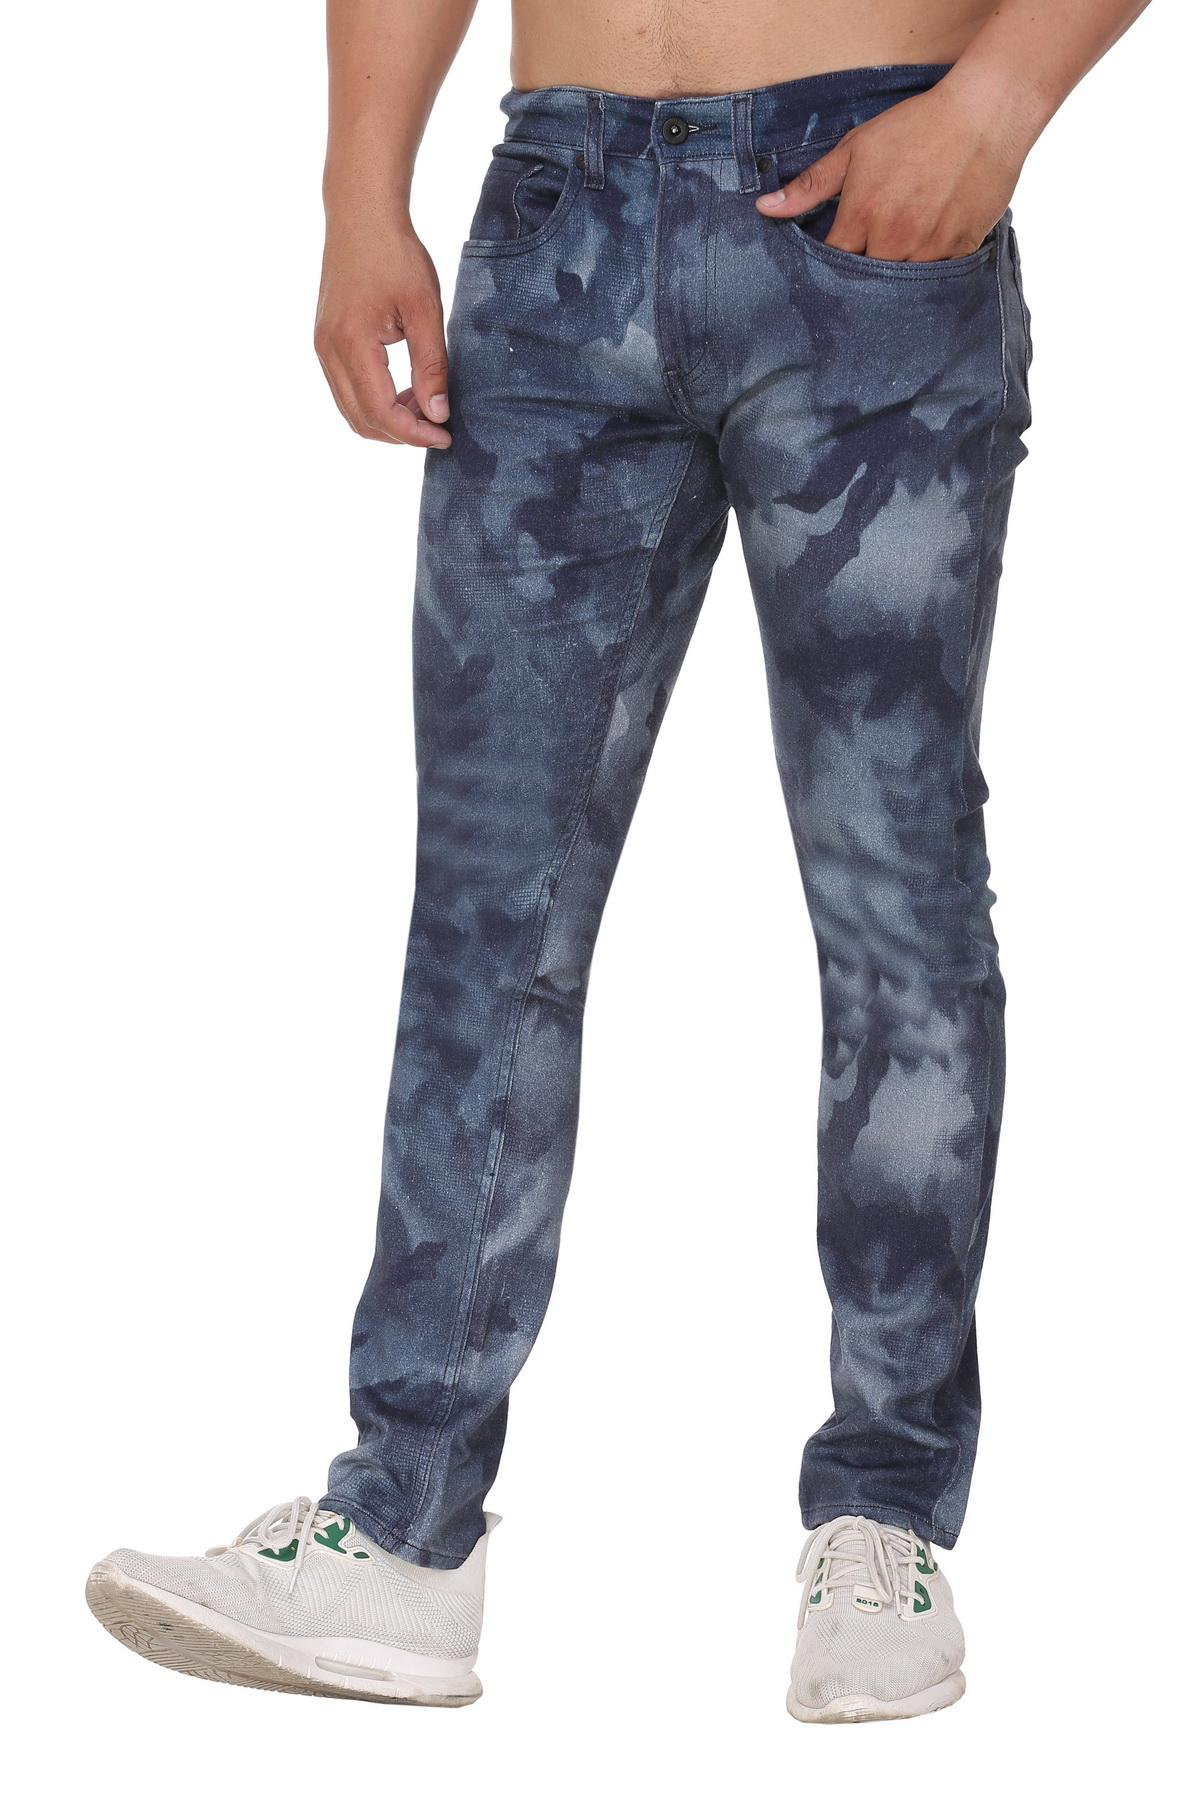 CASA Men's Cotton printed Skinny Fit Jeans